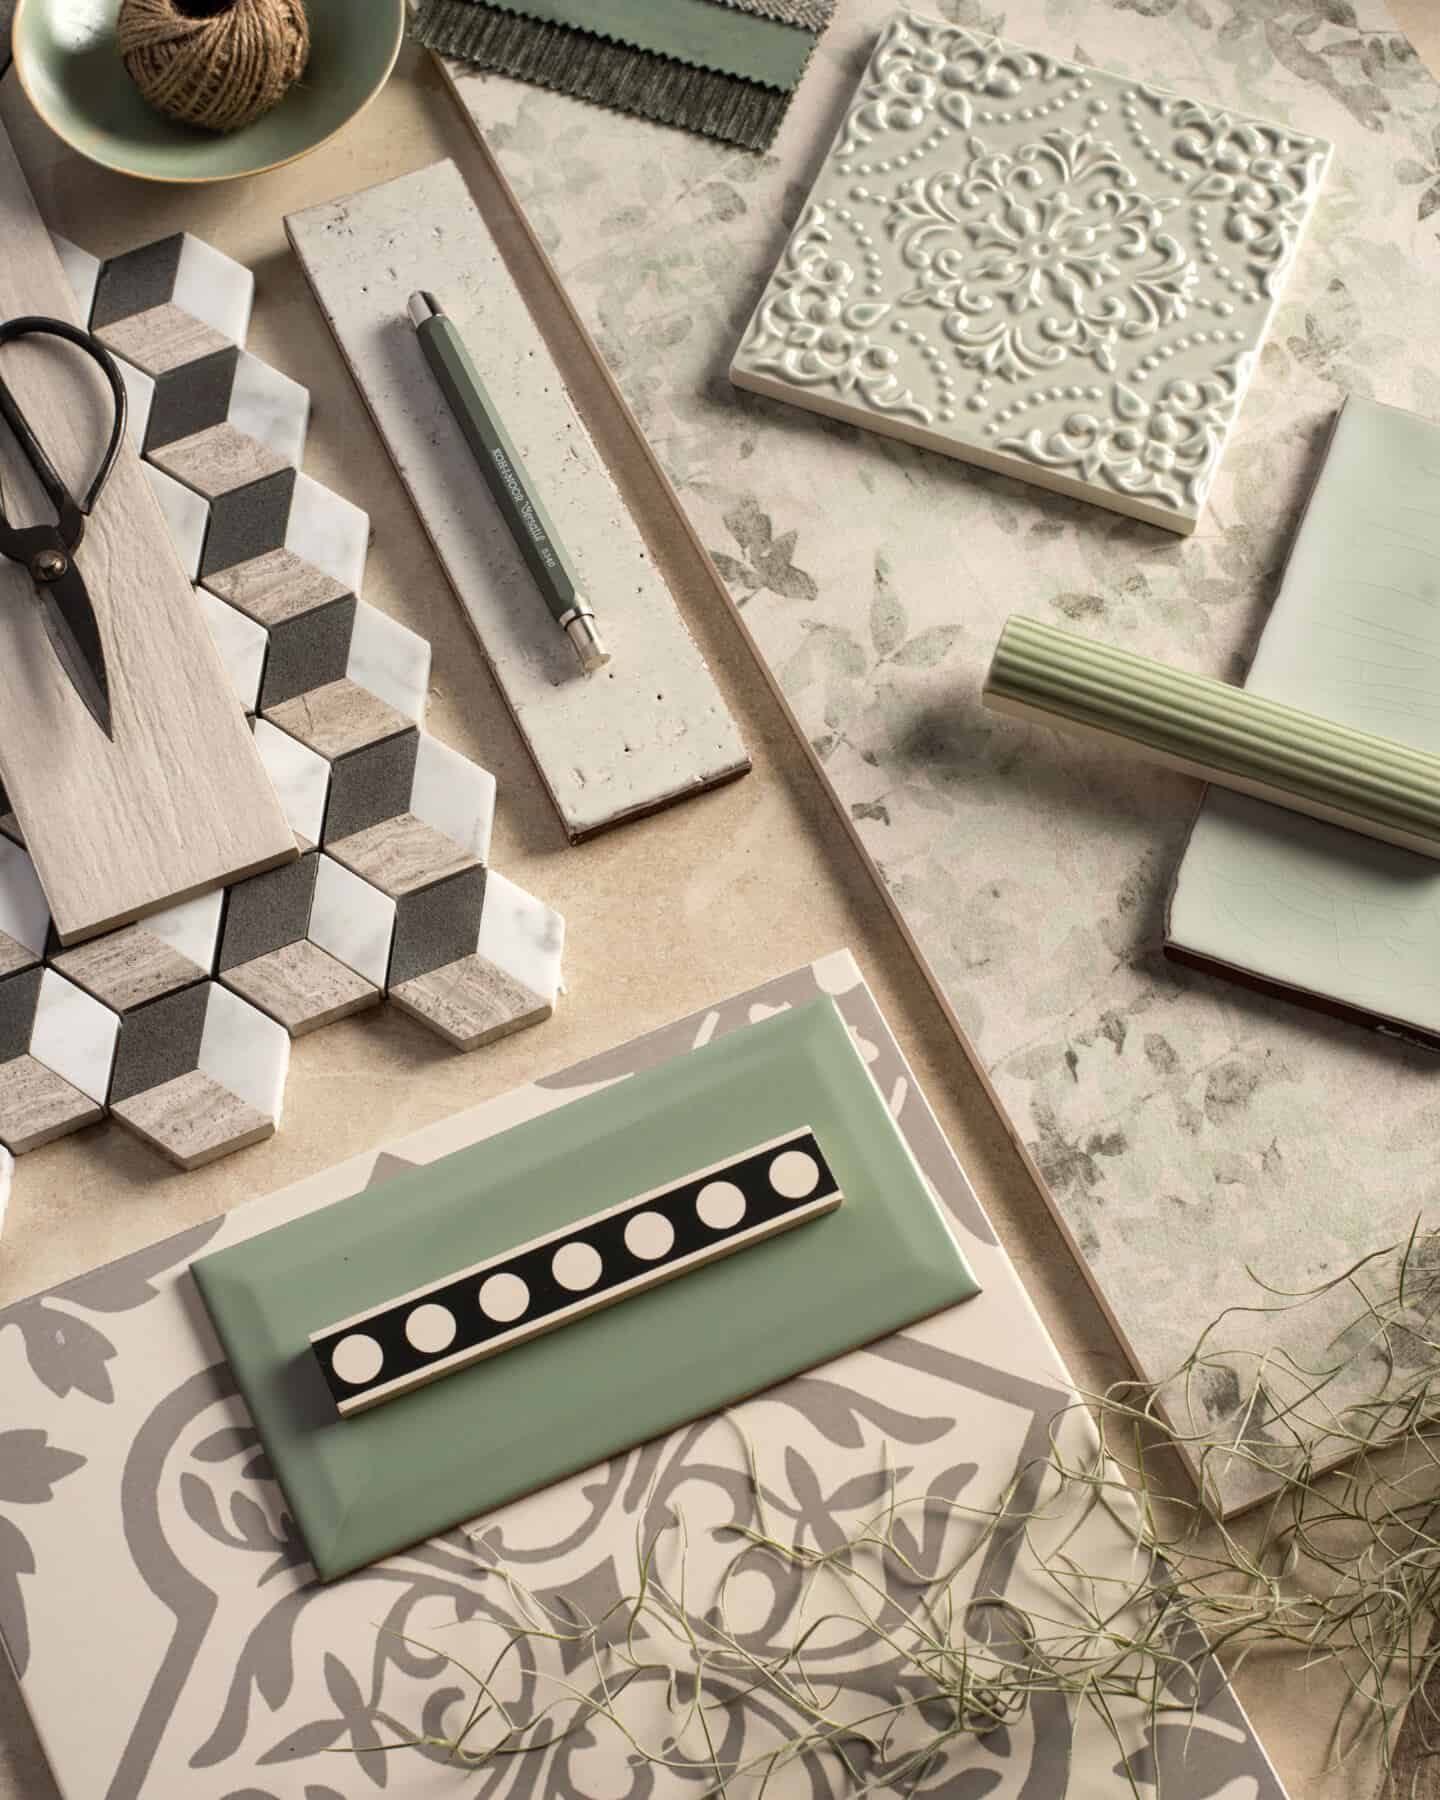 Interiors Trends for 2021 - Home Hub - Original Style Mood Board showing green tiles, pencil,scissors and string